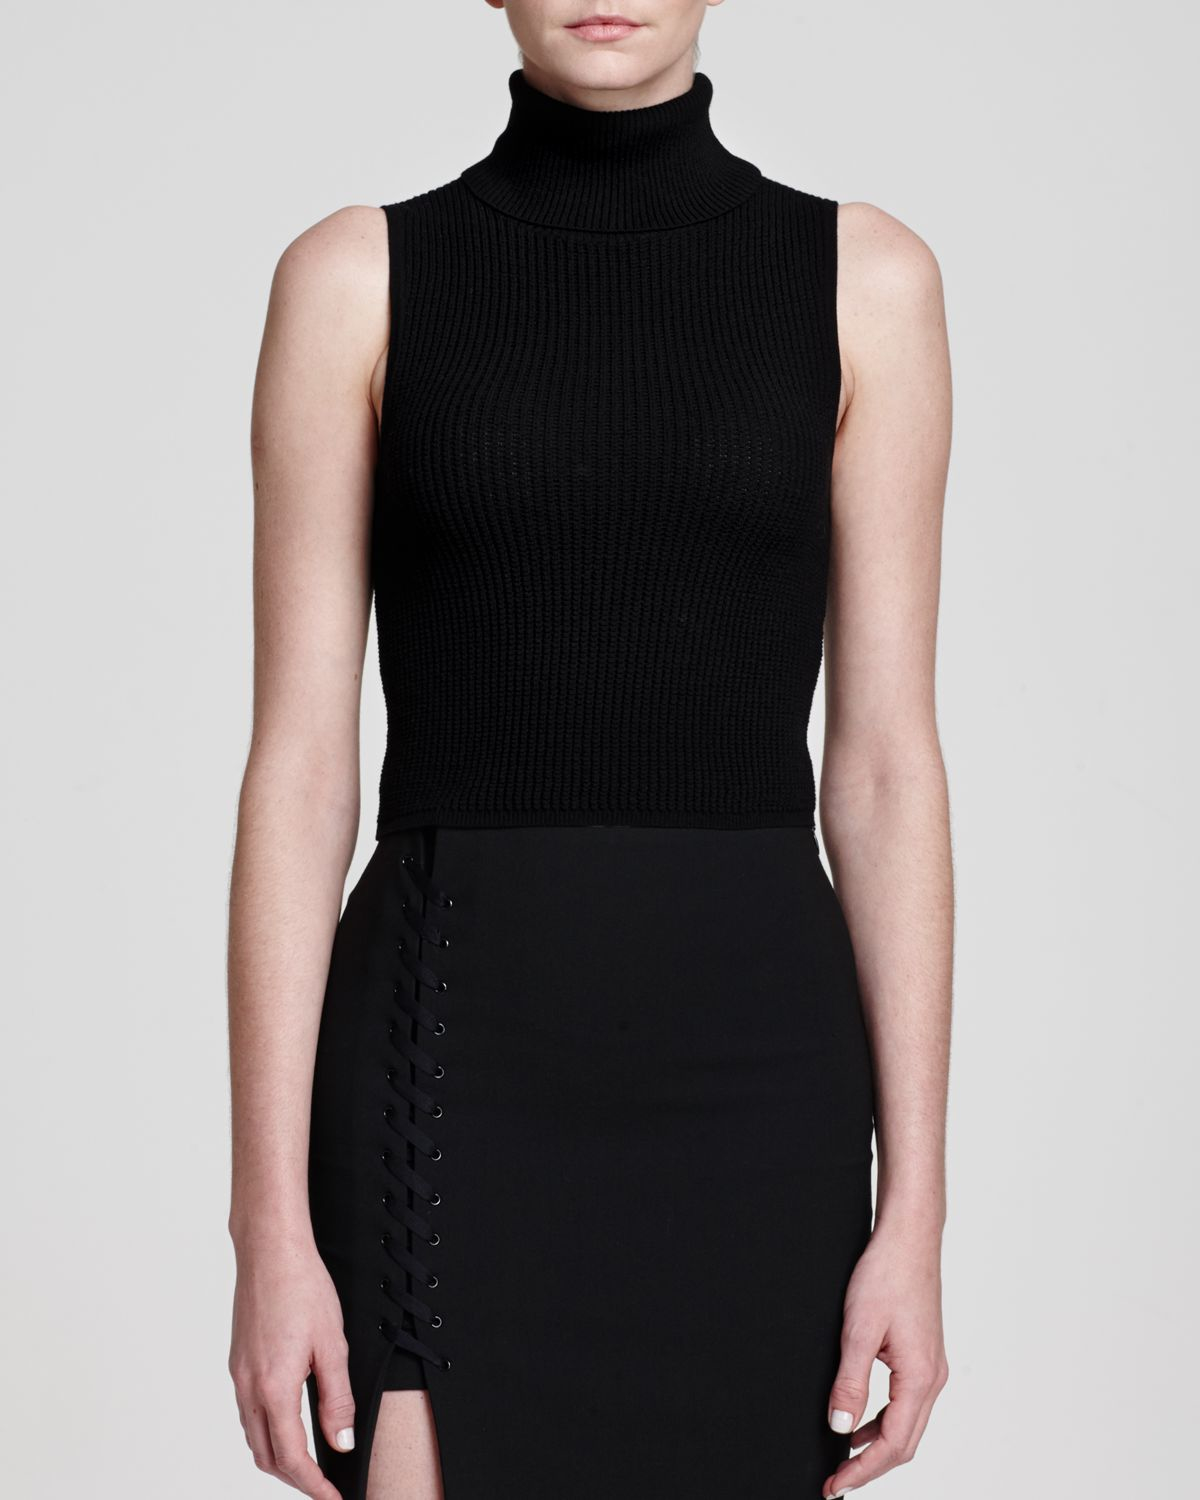 Elizabeth And James Sleeveless Turtleneck Sweater In Black